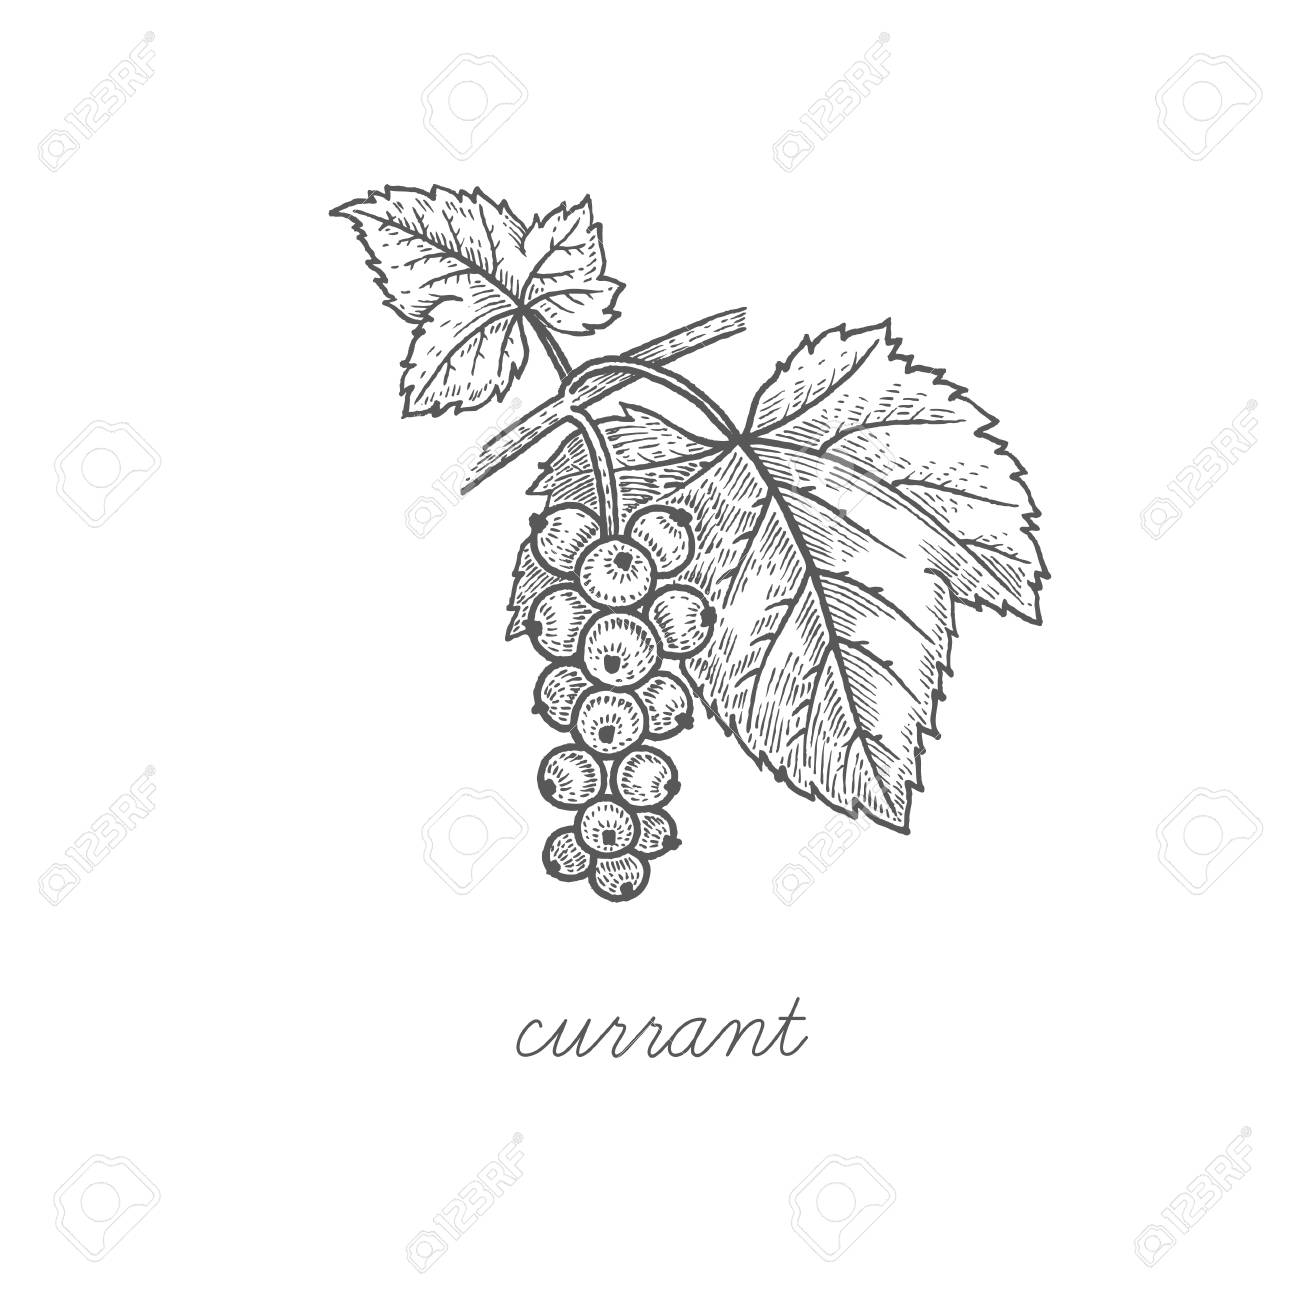 Currant. Vector plant isolated on white background. The concept of graphic image fruits, berries. Design for package of health and beauty natural products. Style Vintage engraving. Black and white. - 125197934